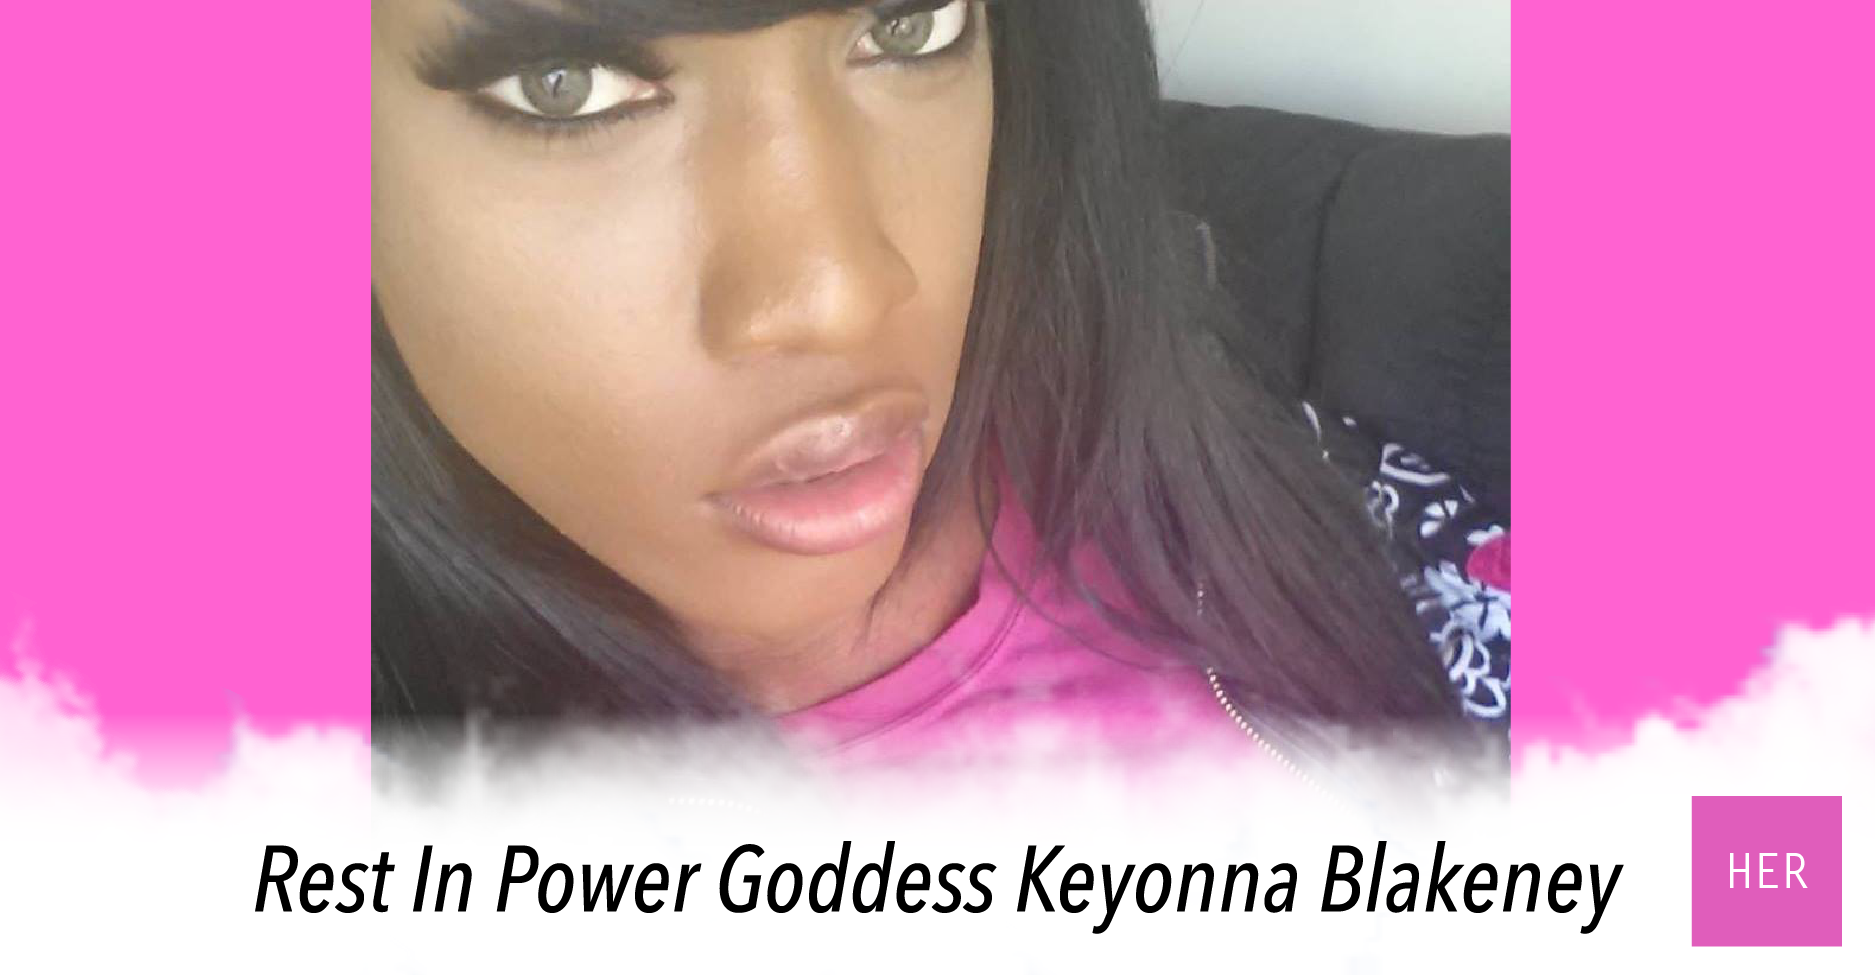 Articles_RestKeyonna-08-1.png